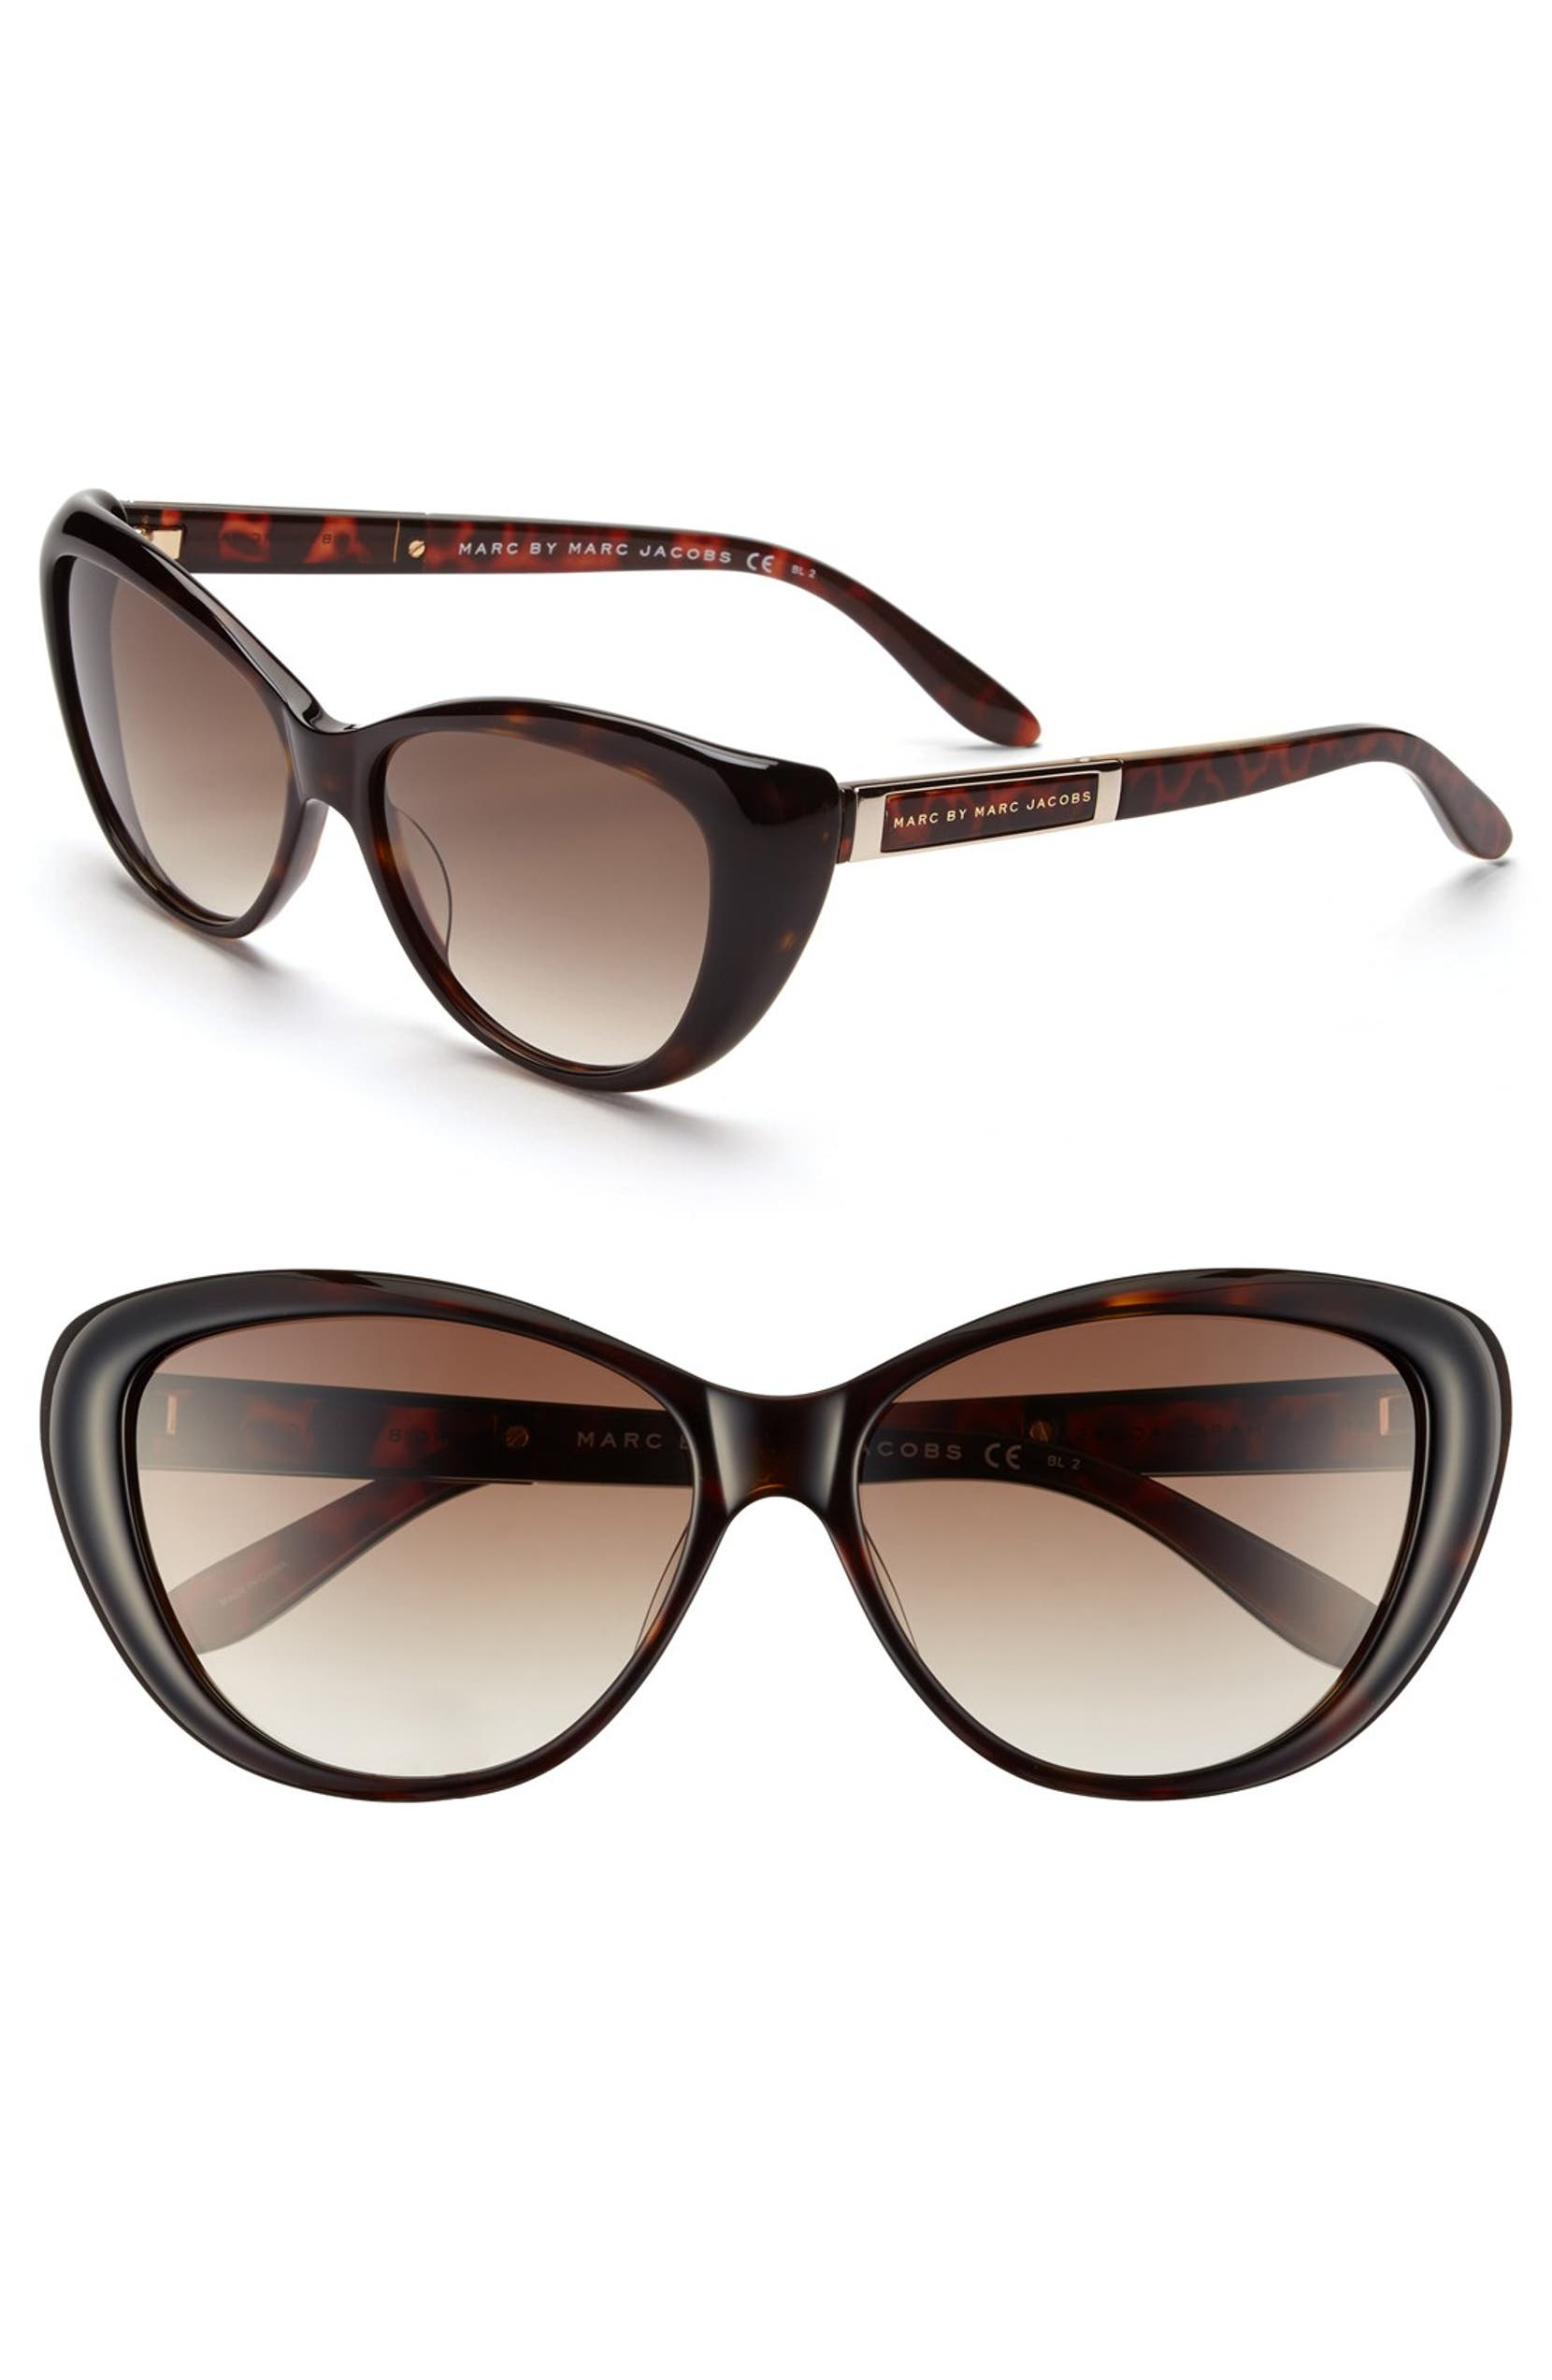 MARC BY MARC JACOBS 56mm Cat Eye Sunglasses   Nordstrom 2164c6f9b6